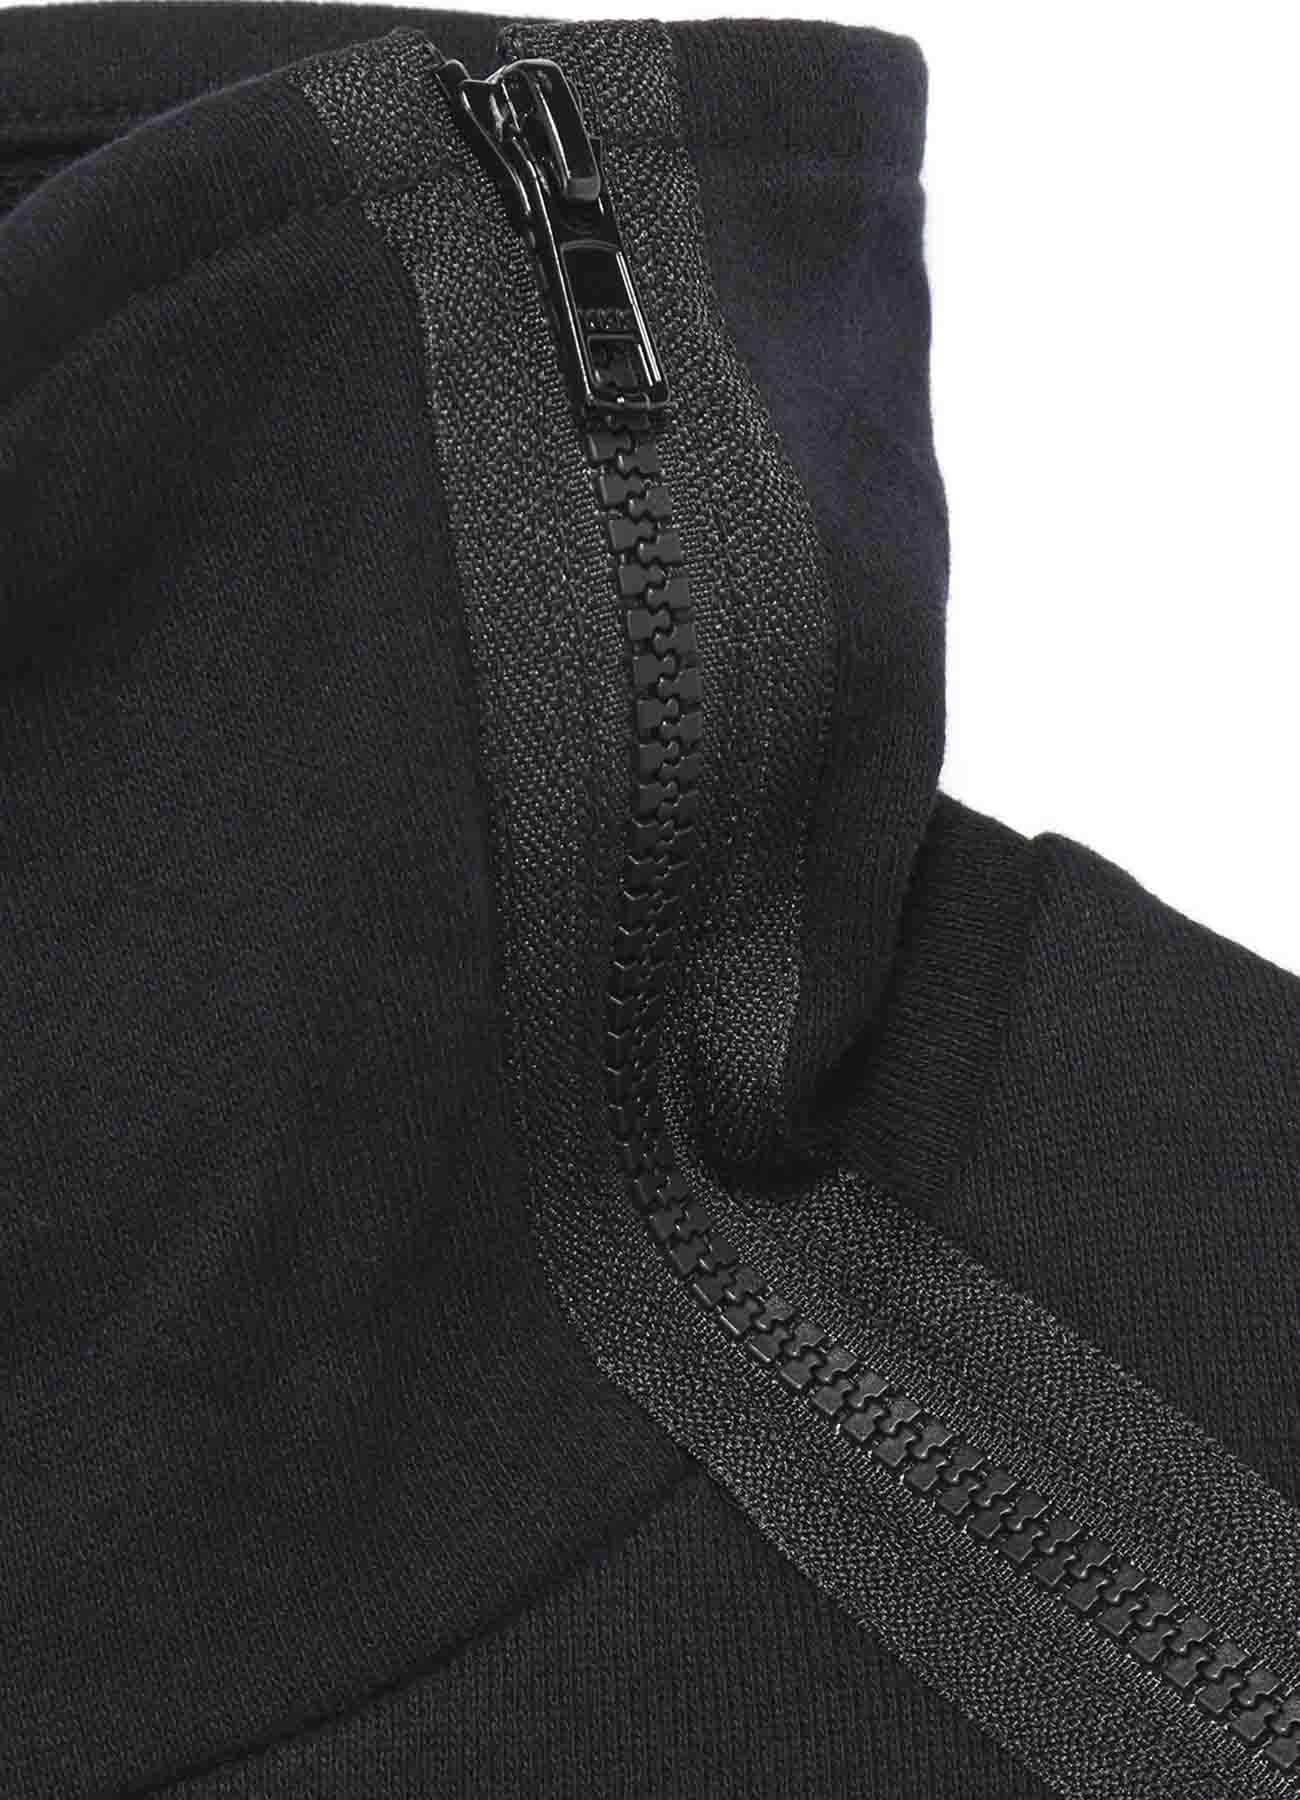 30/10 FLEECY LINING B/ZIP SLV P EMBROIDERY